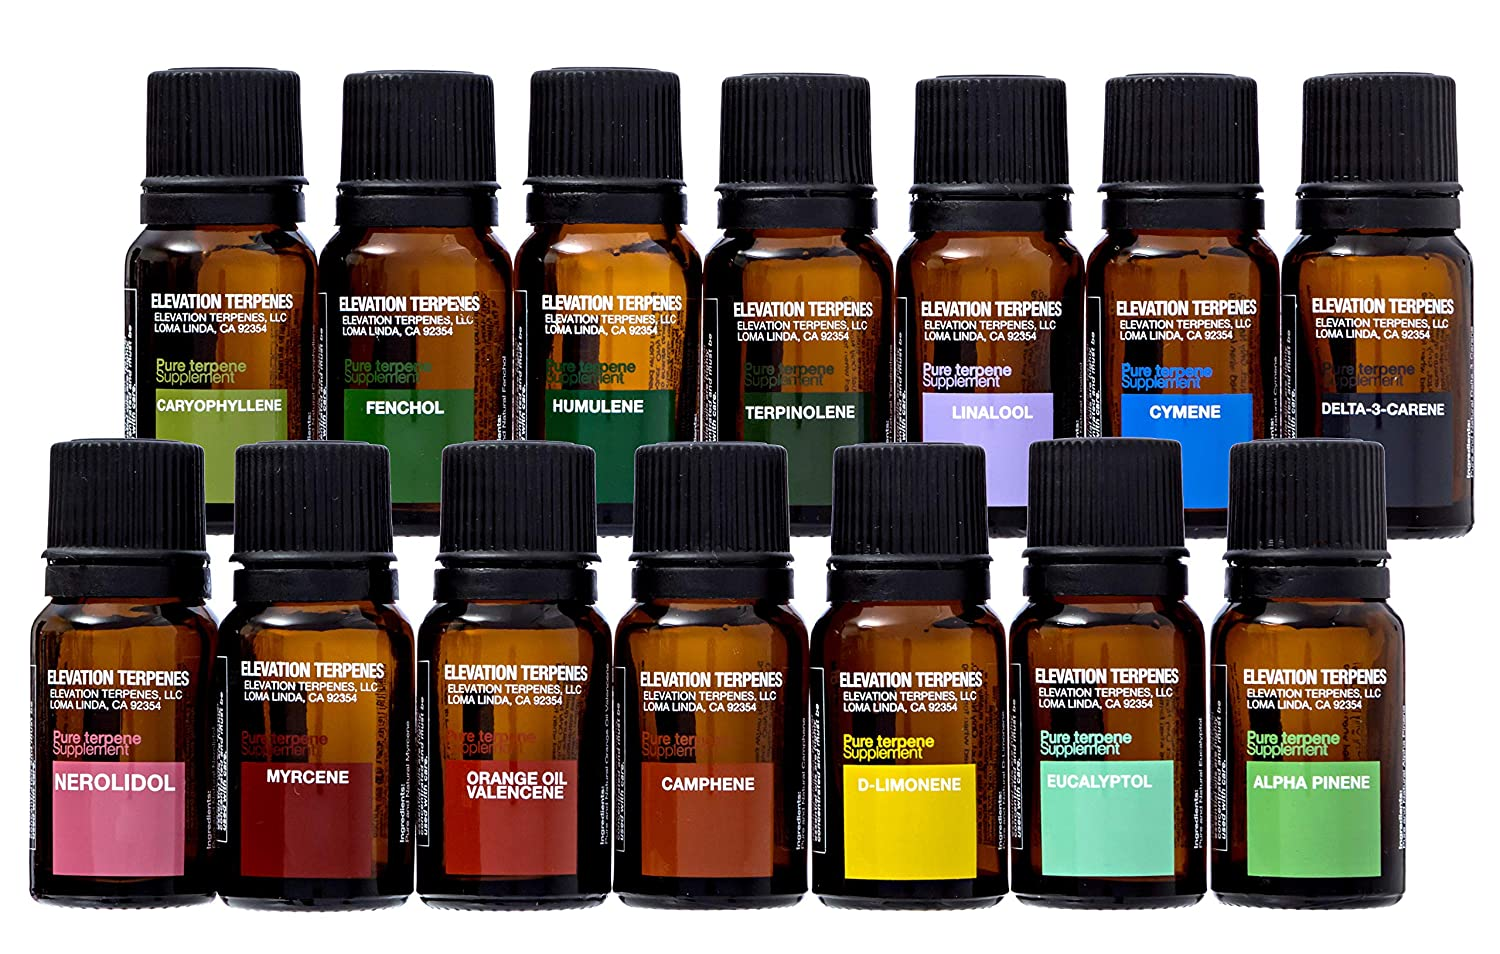 Elevation Terpenes Full-Spectrum Package, Made in the USA (All 14 Oils)